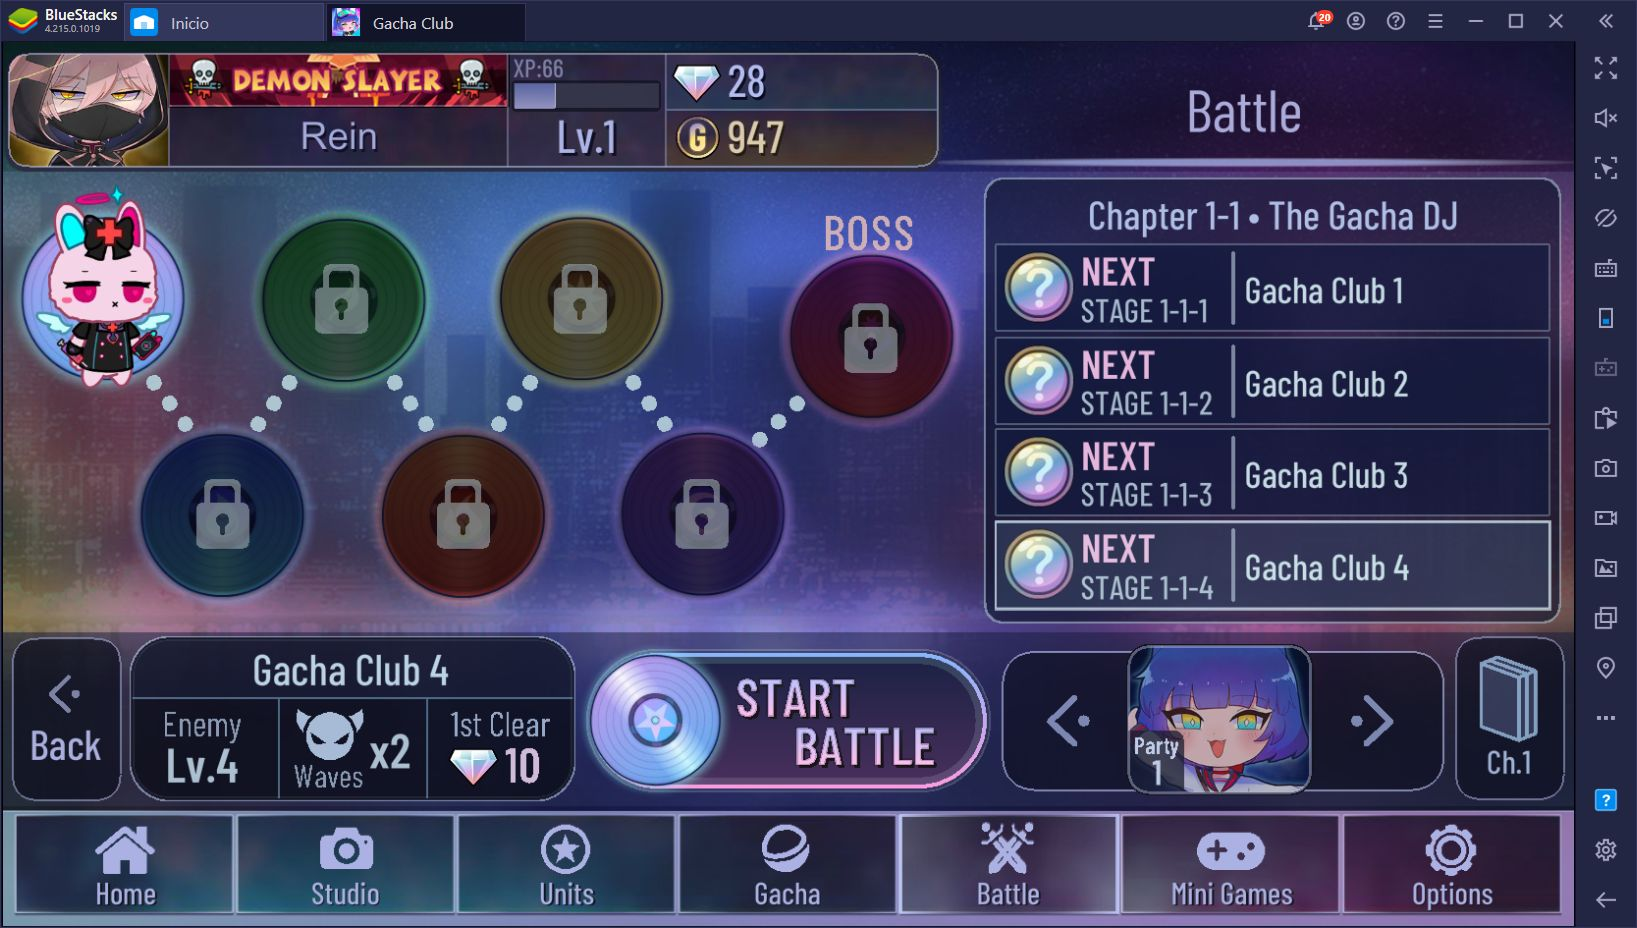 Gacha Club - All the New Features and Elements